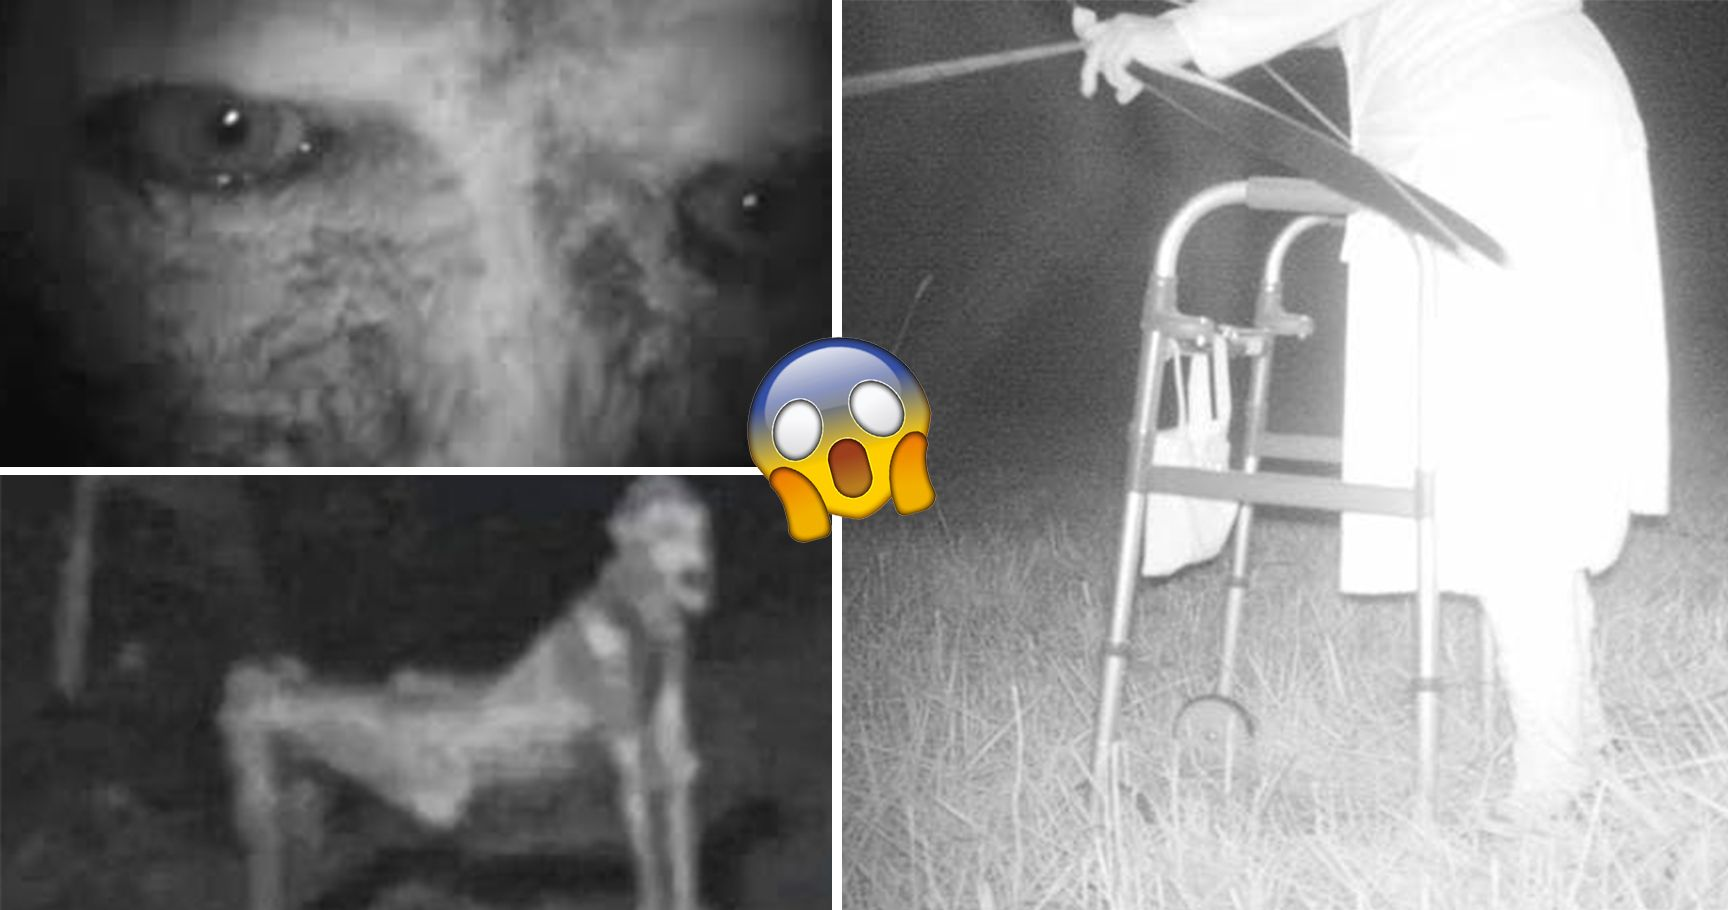 15 Horrifying Trail Cam Photos That Are Every Camper's Worst Nightmare